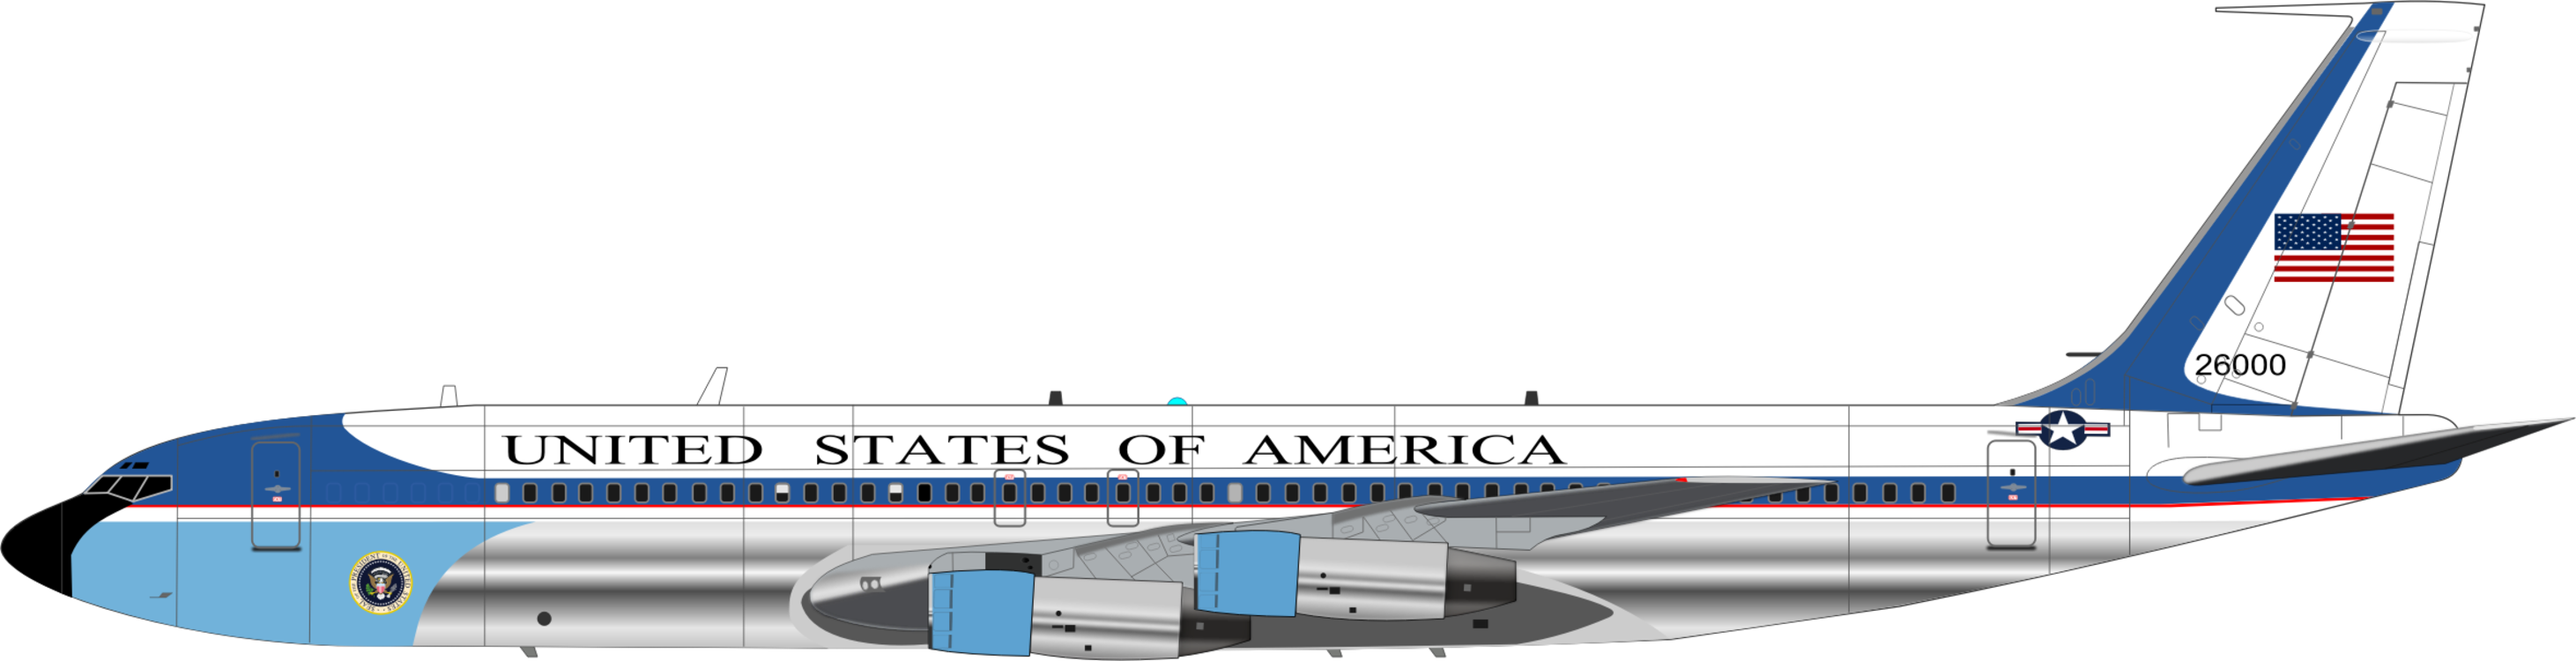 Air force one cliparts image download Boeing C 32,Narrow Body Aircraft,Aerospace Manufacturer Vector ... image download